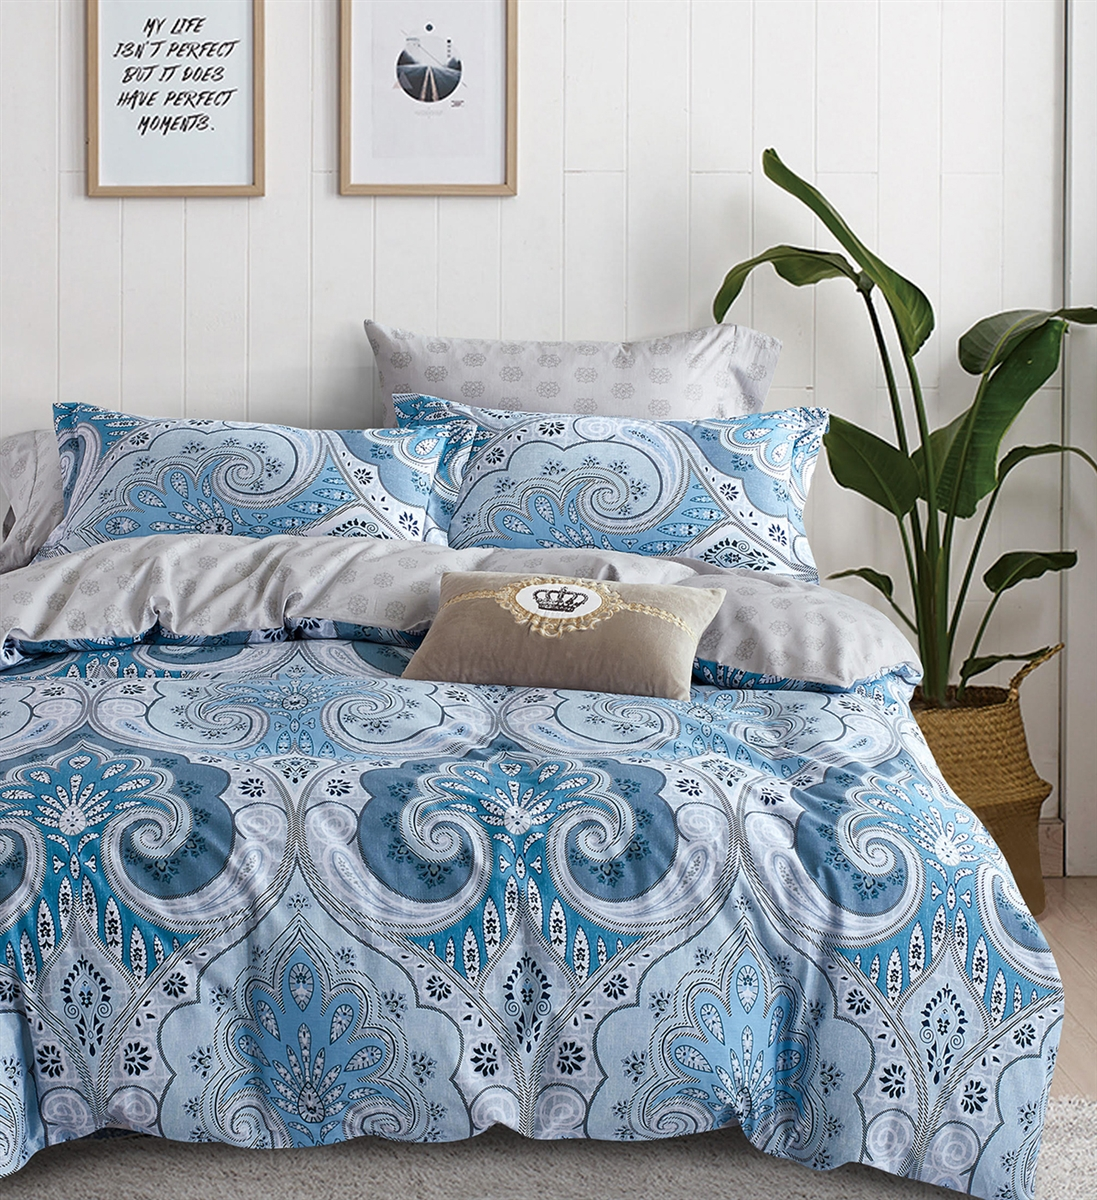 Bedford 8PC 100% Cotton Bedding Set